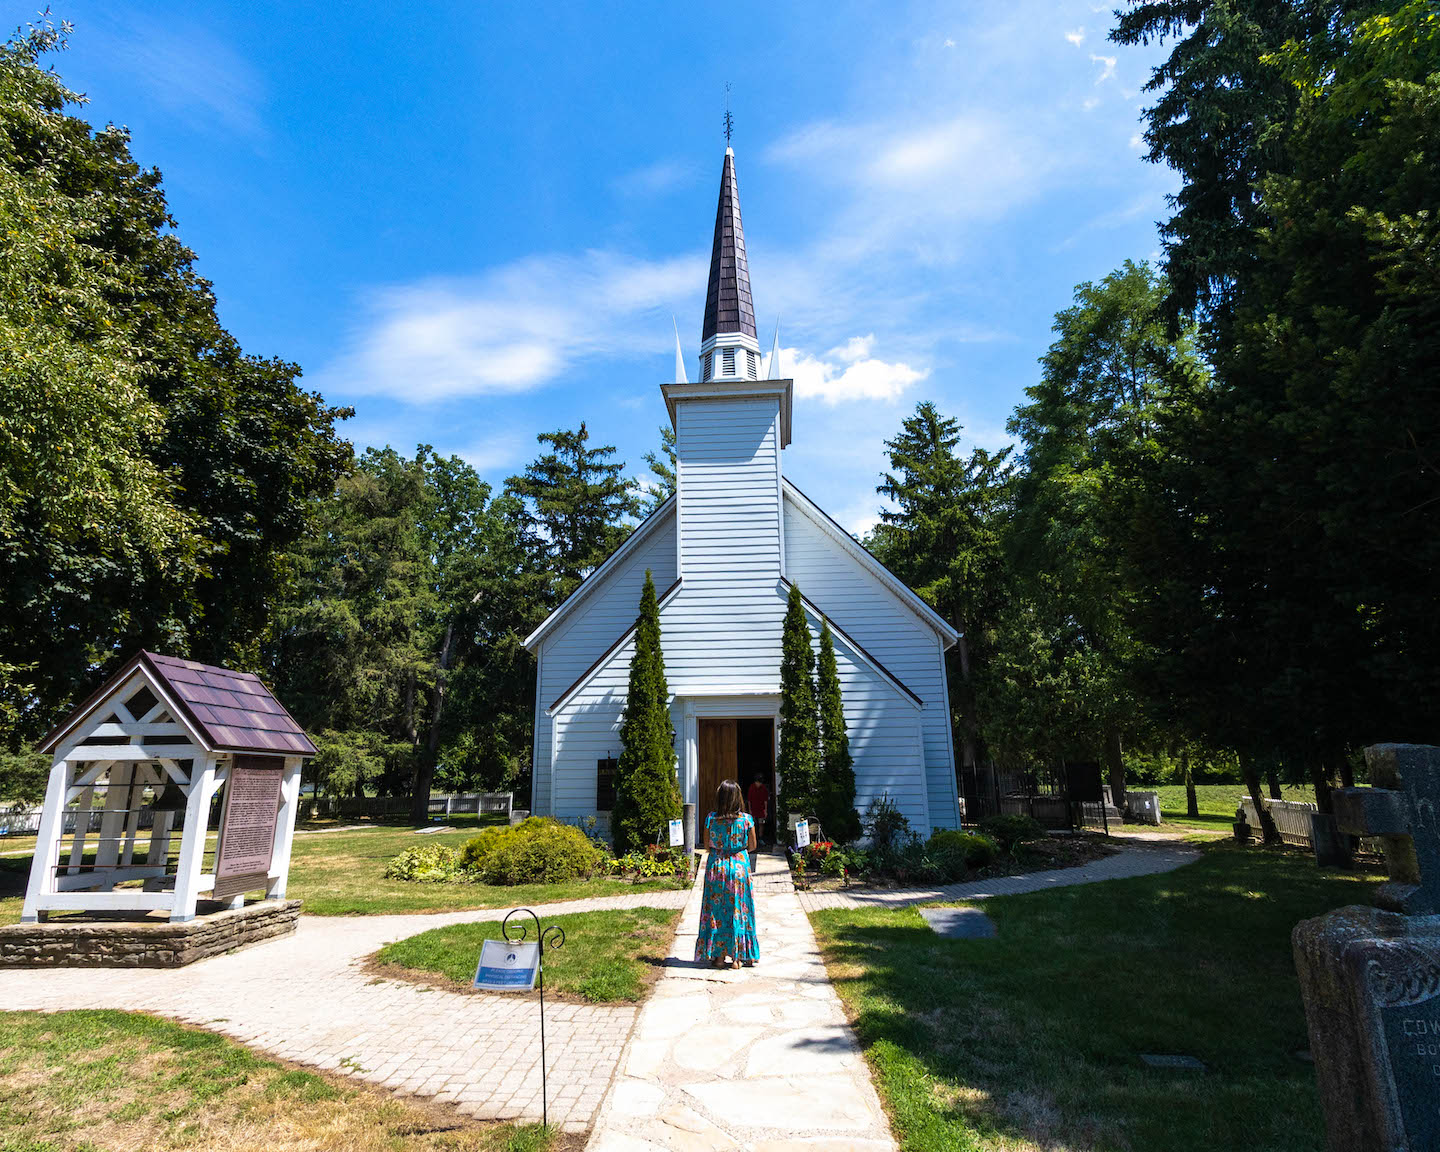 Her Majesty's Royal Chapel of the Mohawks